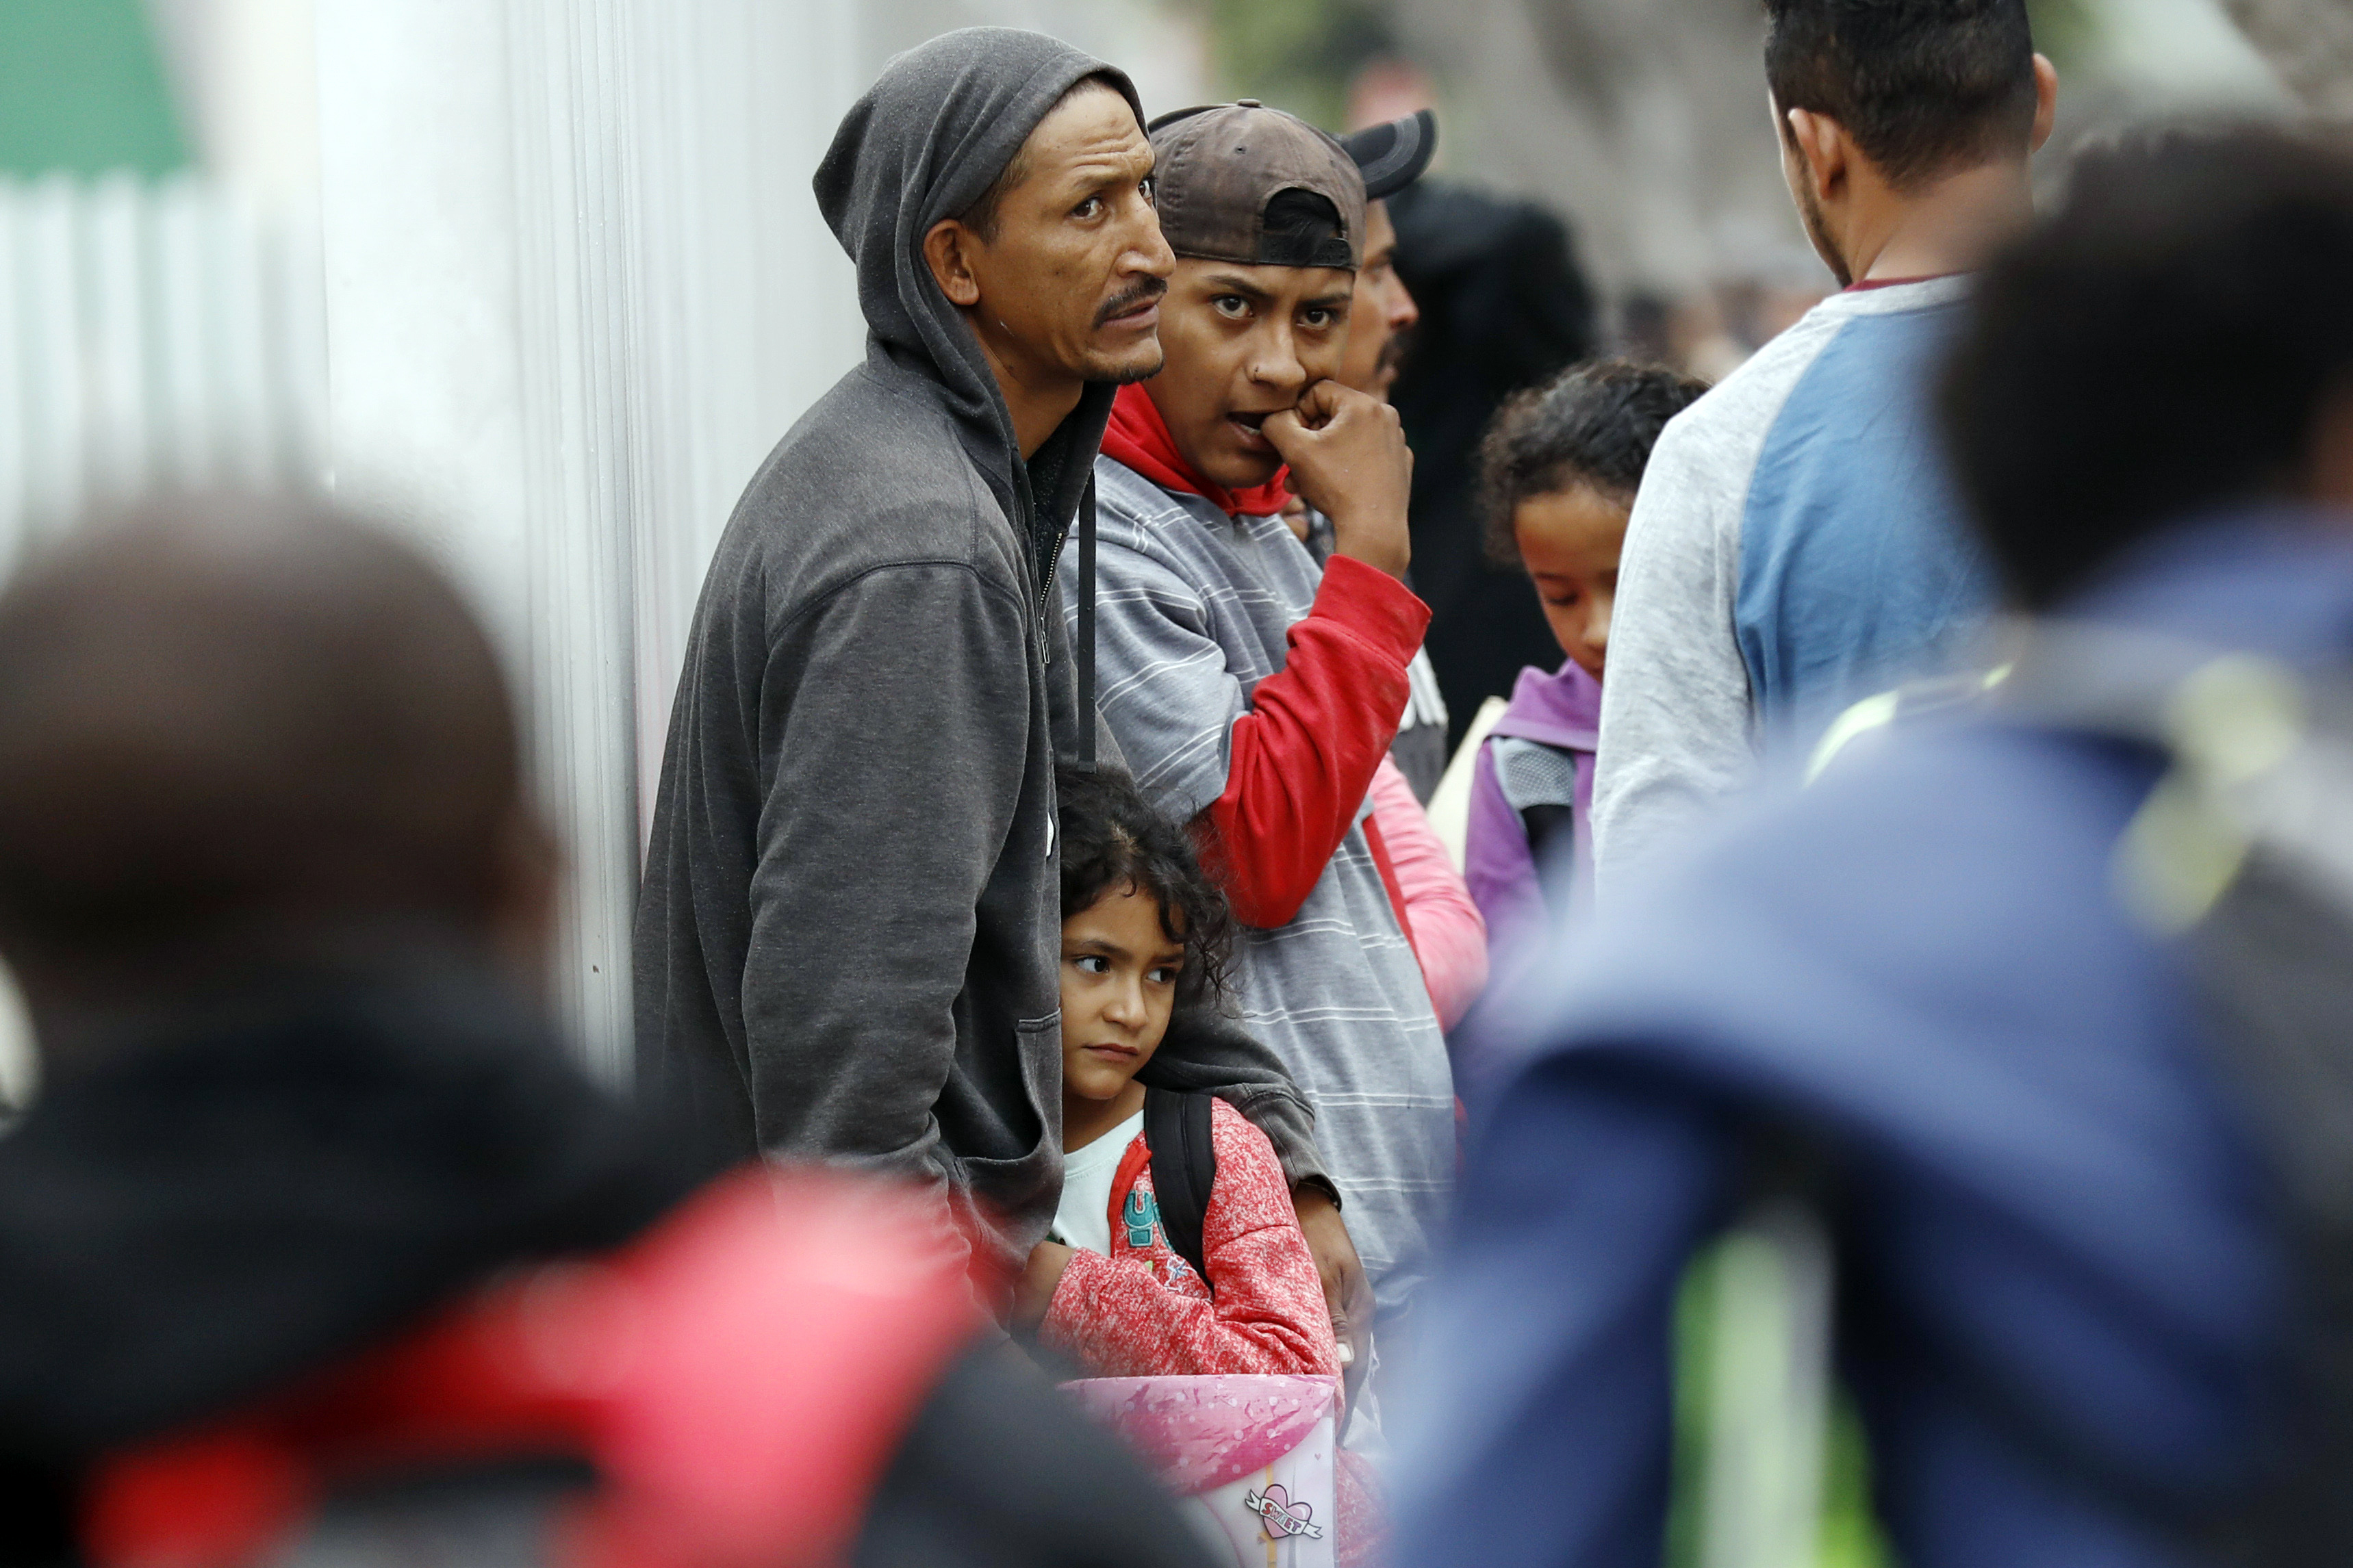 Judge refuses to second-guess family separations at border